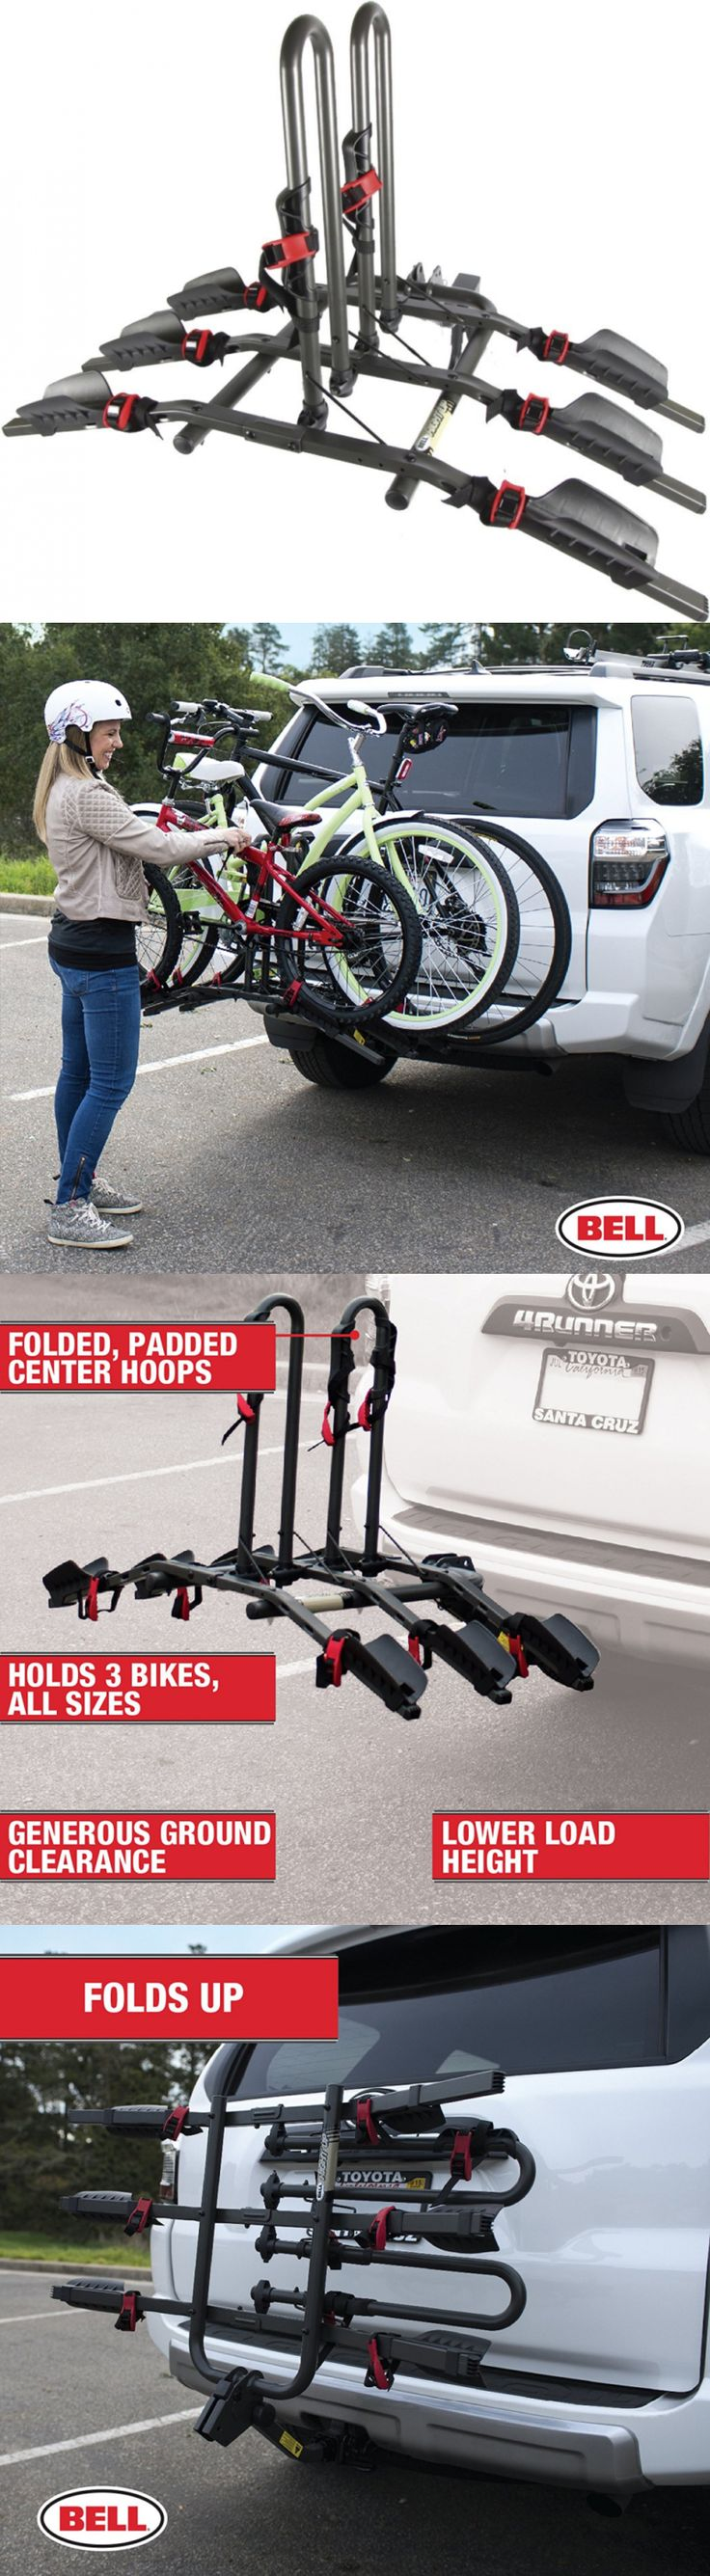 Car and Truck Racks 177849: New Bell Rightup 3 Bike Bicycle Platform Hitch Rack Sports 1.25 Or 2 Receivers -> BUY IT NOW ONLY: $151.22 on eBay!